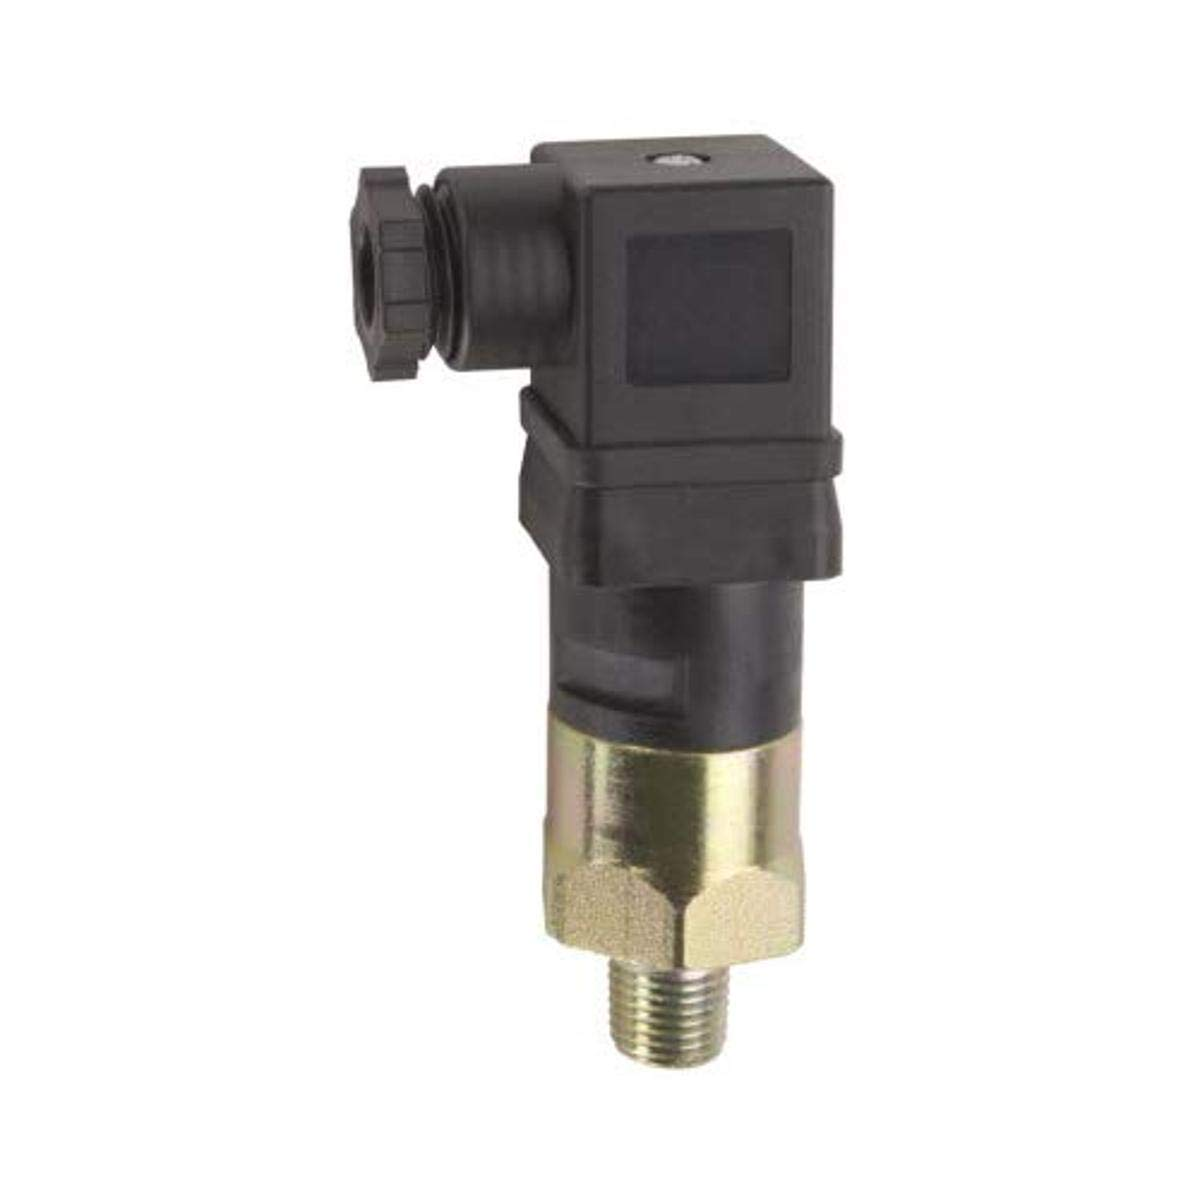 Pack of 10 65-300 psi Range 9//16-18 SAE Male Steel Fitting Gems PS72-30-6MSZ-C-SP-G Series PS72 General Purpose Mini Pressure Switch Gold Contacts Spade Terminals SPDT Circuit